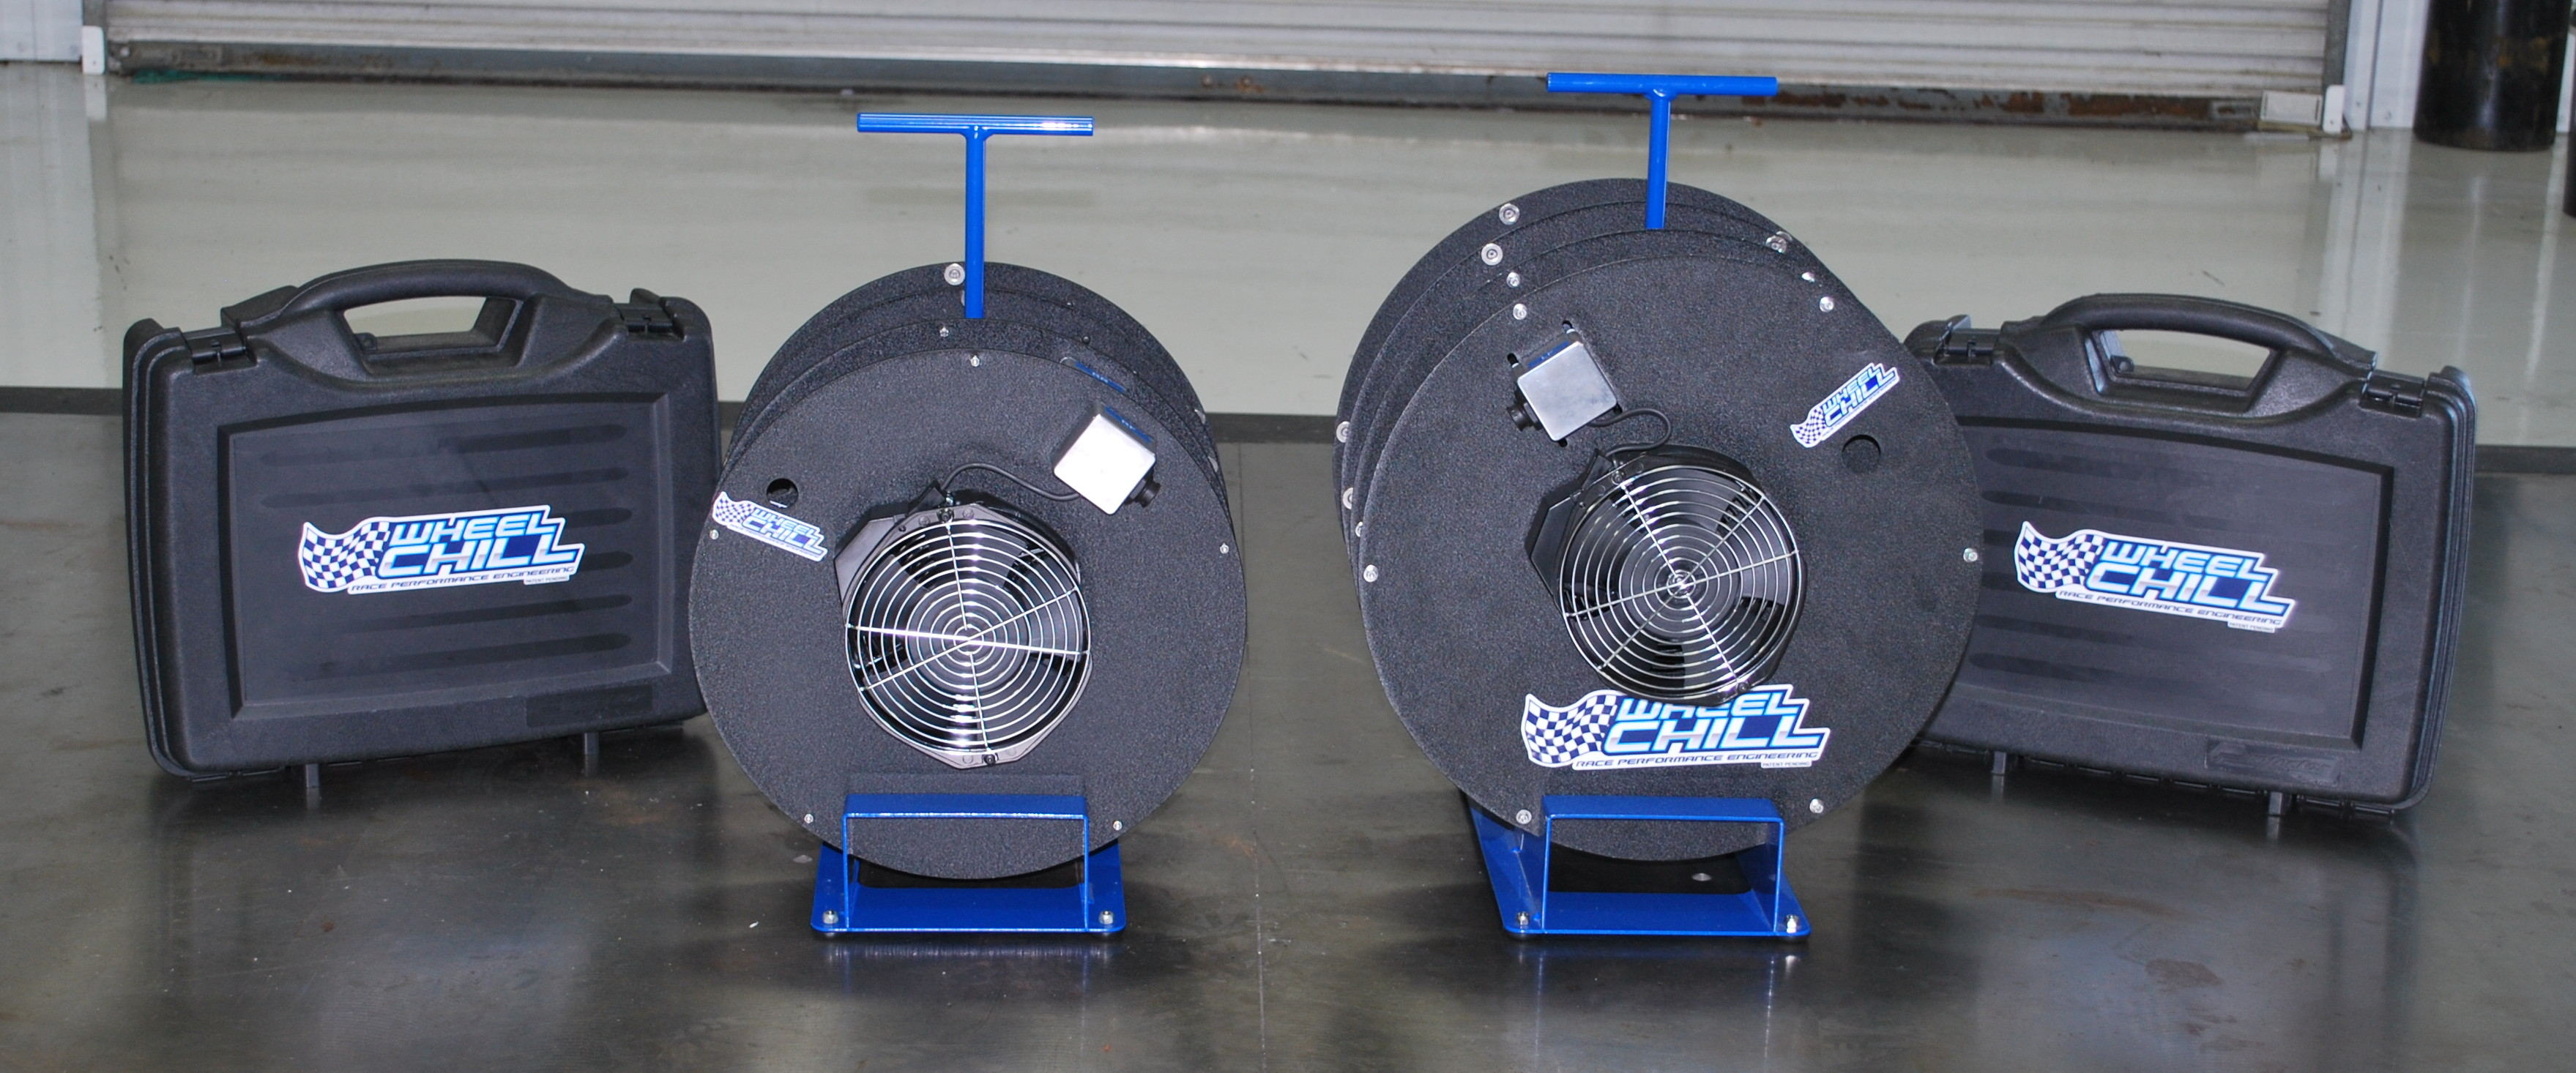 A product lineup of Wheel Chill products